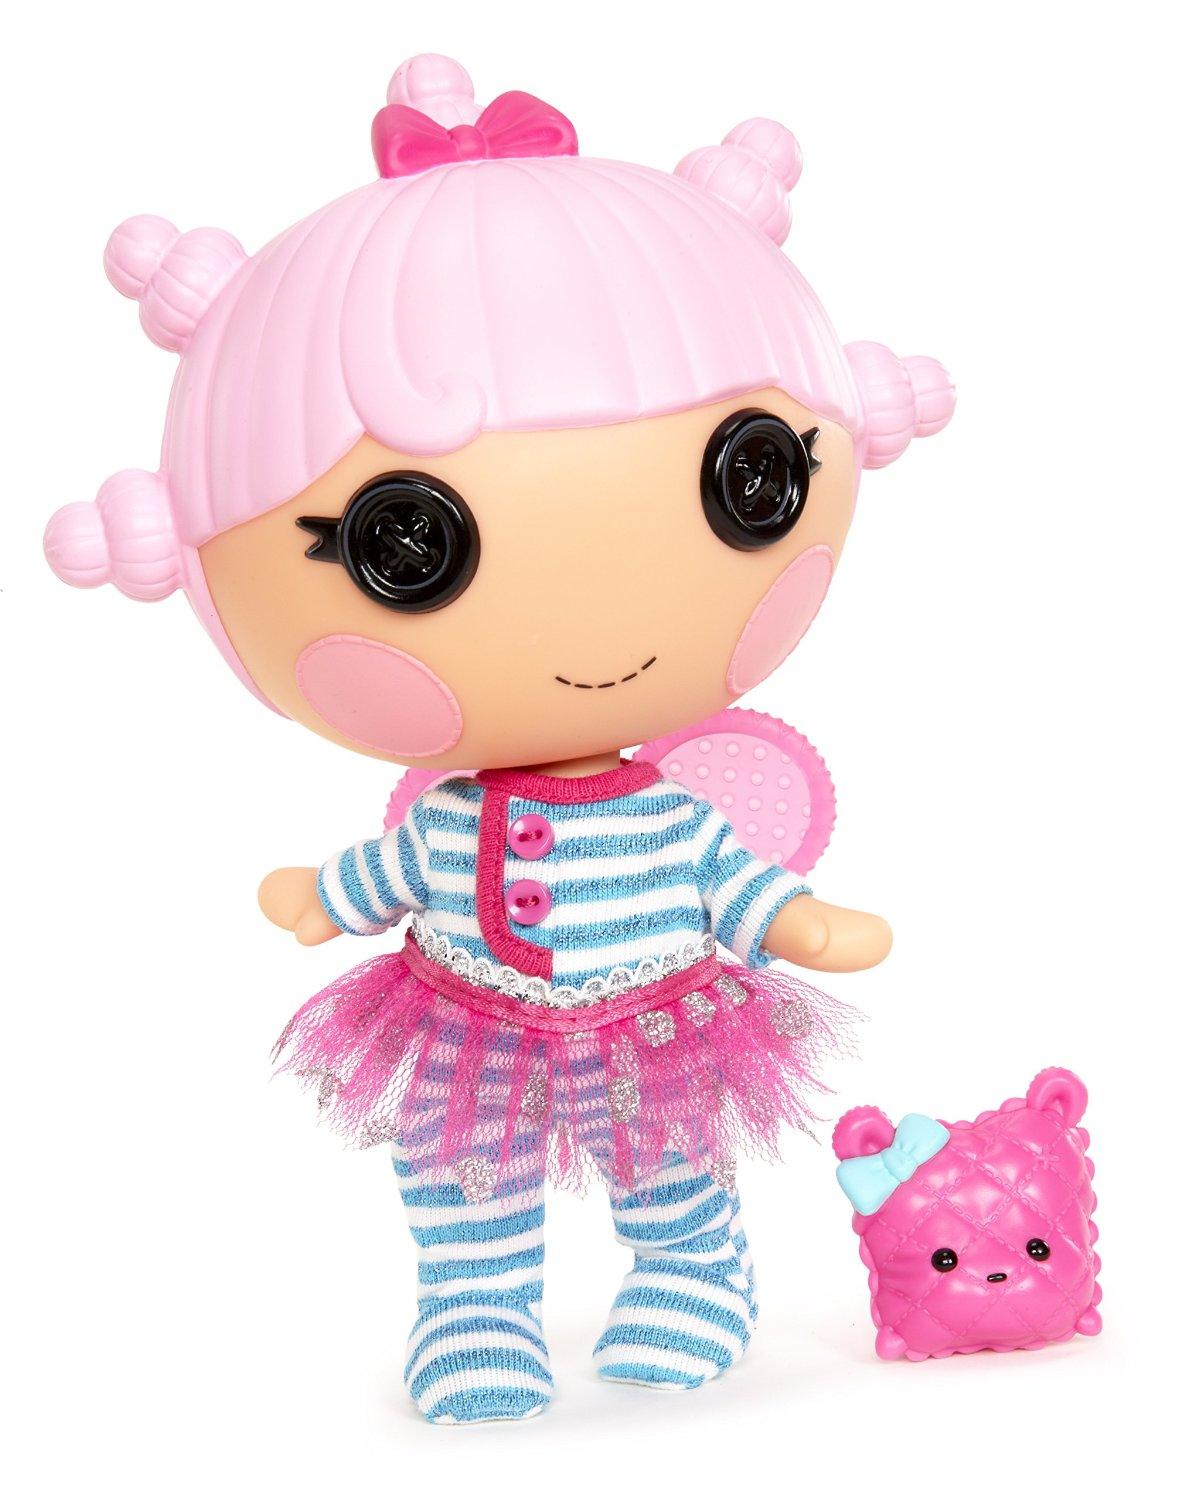 Dream E Wishes Lalaloopsy Land Wiki Fandom Powered By